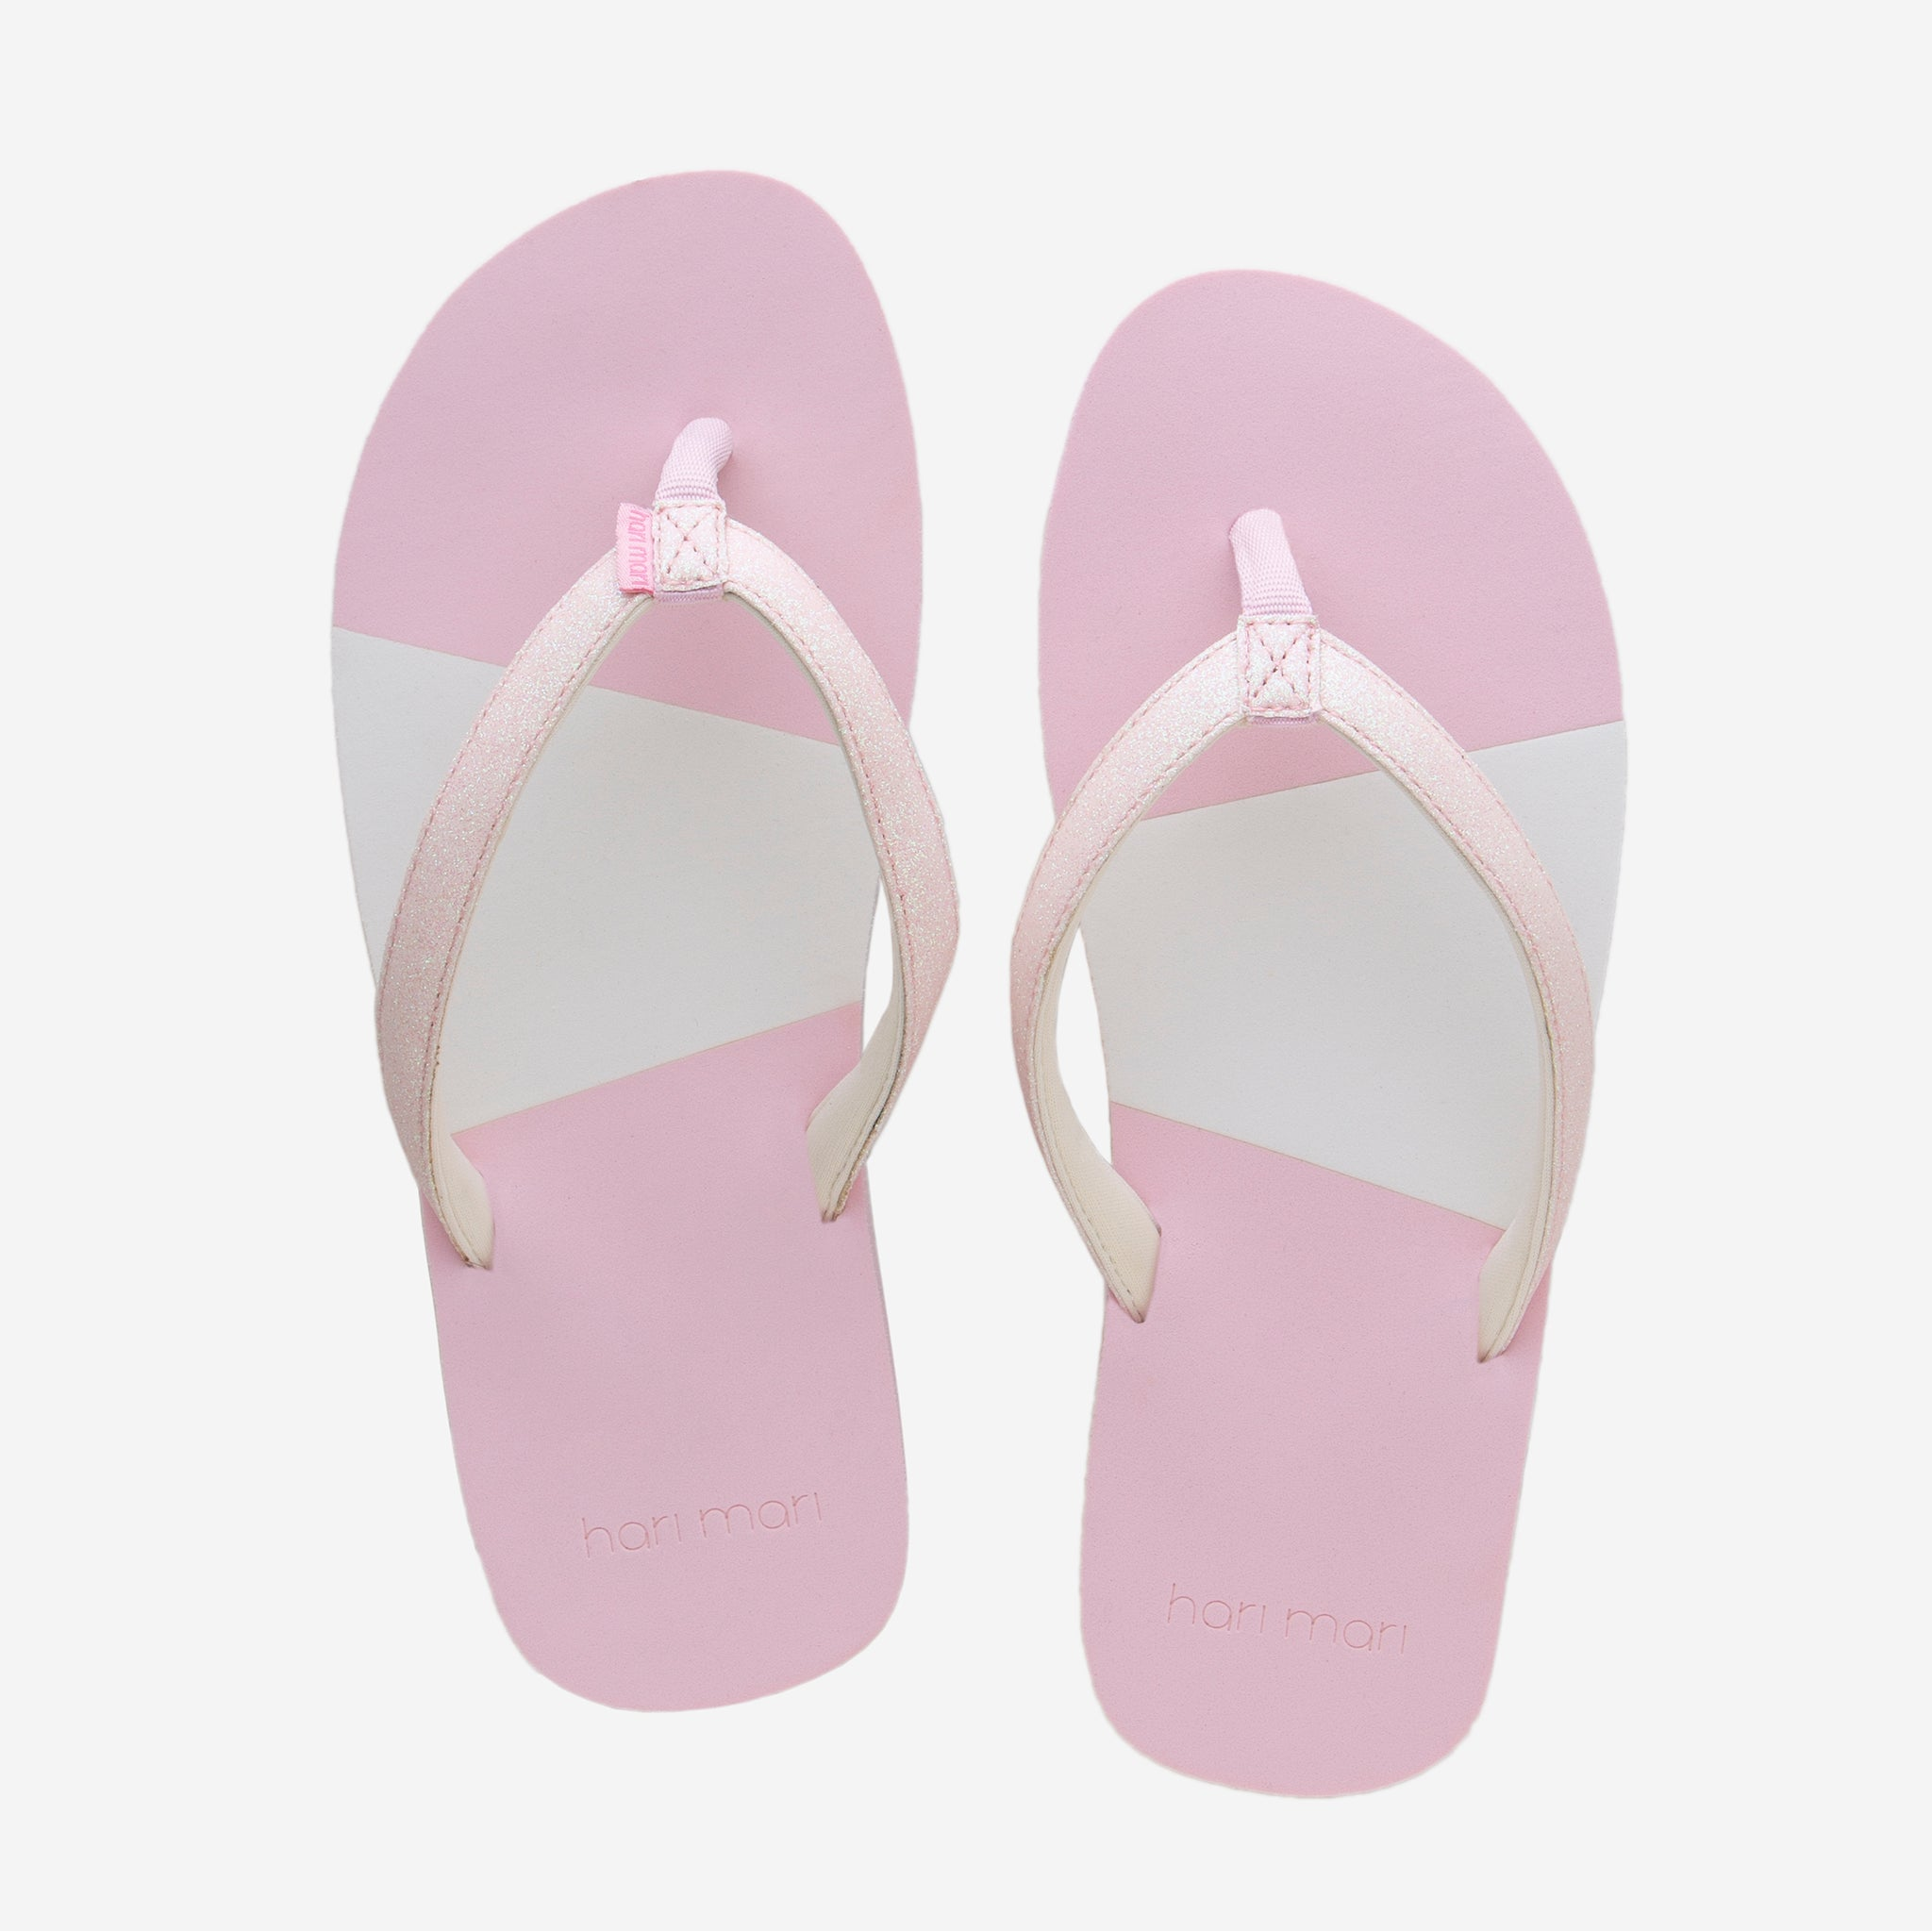 Hari Mari Youth Meadows Asana Glitter flip flops in Pink on white background